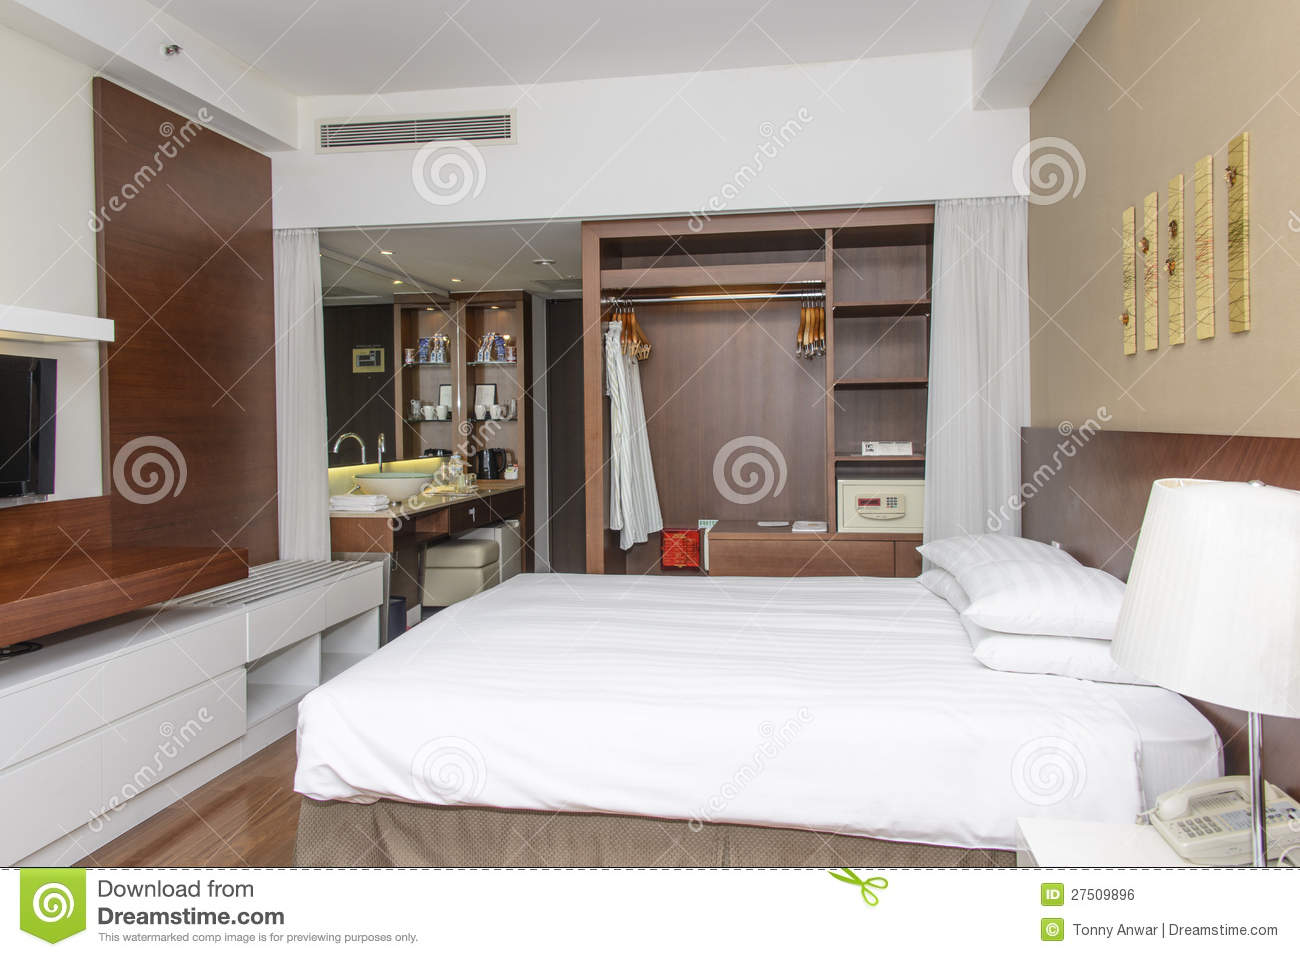 Modern Hotel Room interior of luxury modern hotel room royalty free stock image